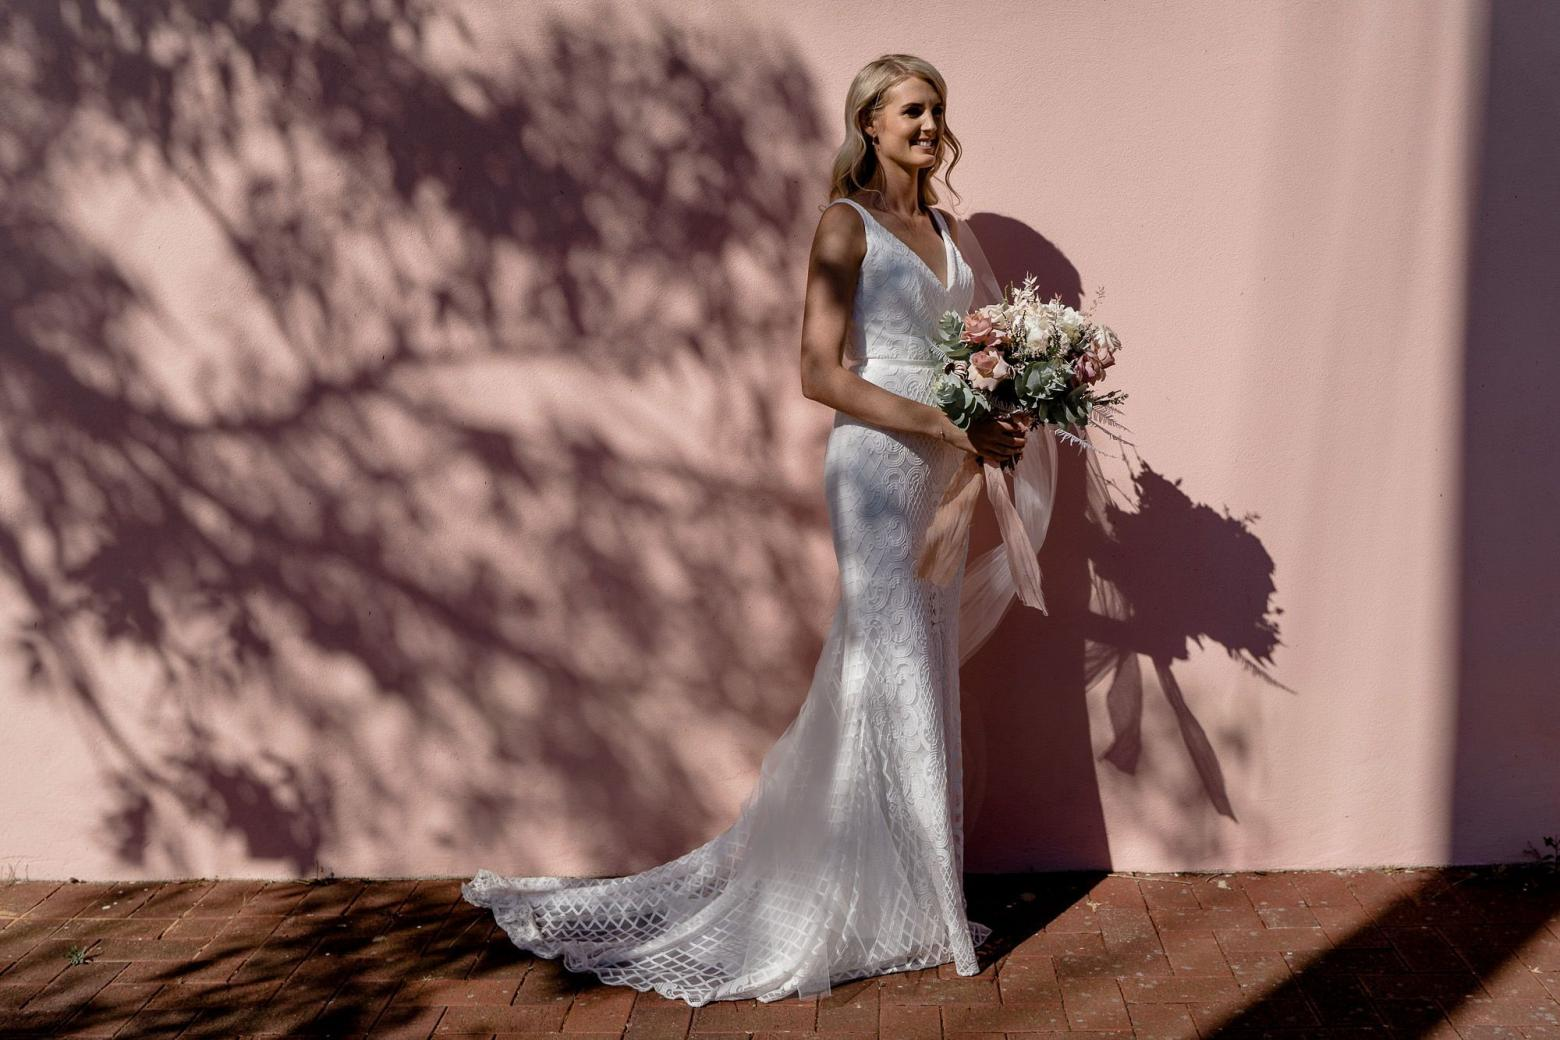 Real bride Bree wore the Wild Hearts Bobby wedding dress by Karen Willis Holmes.